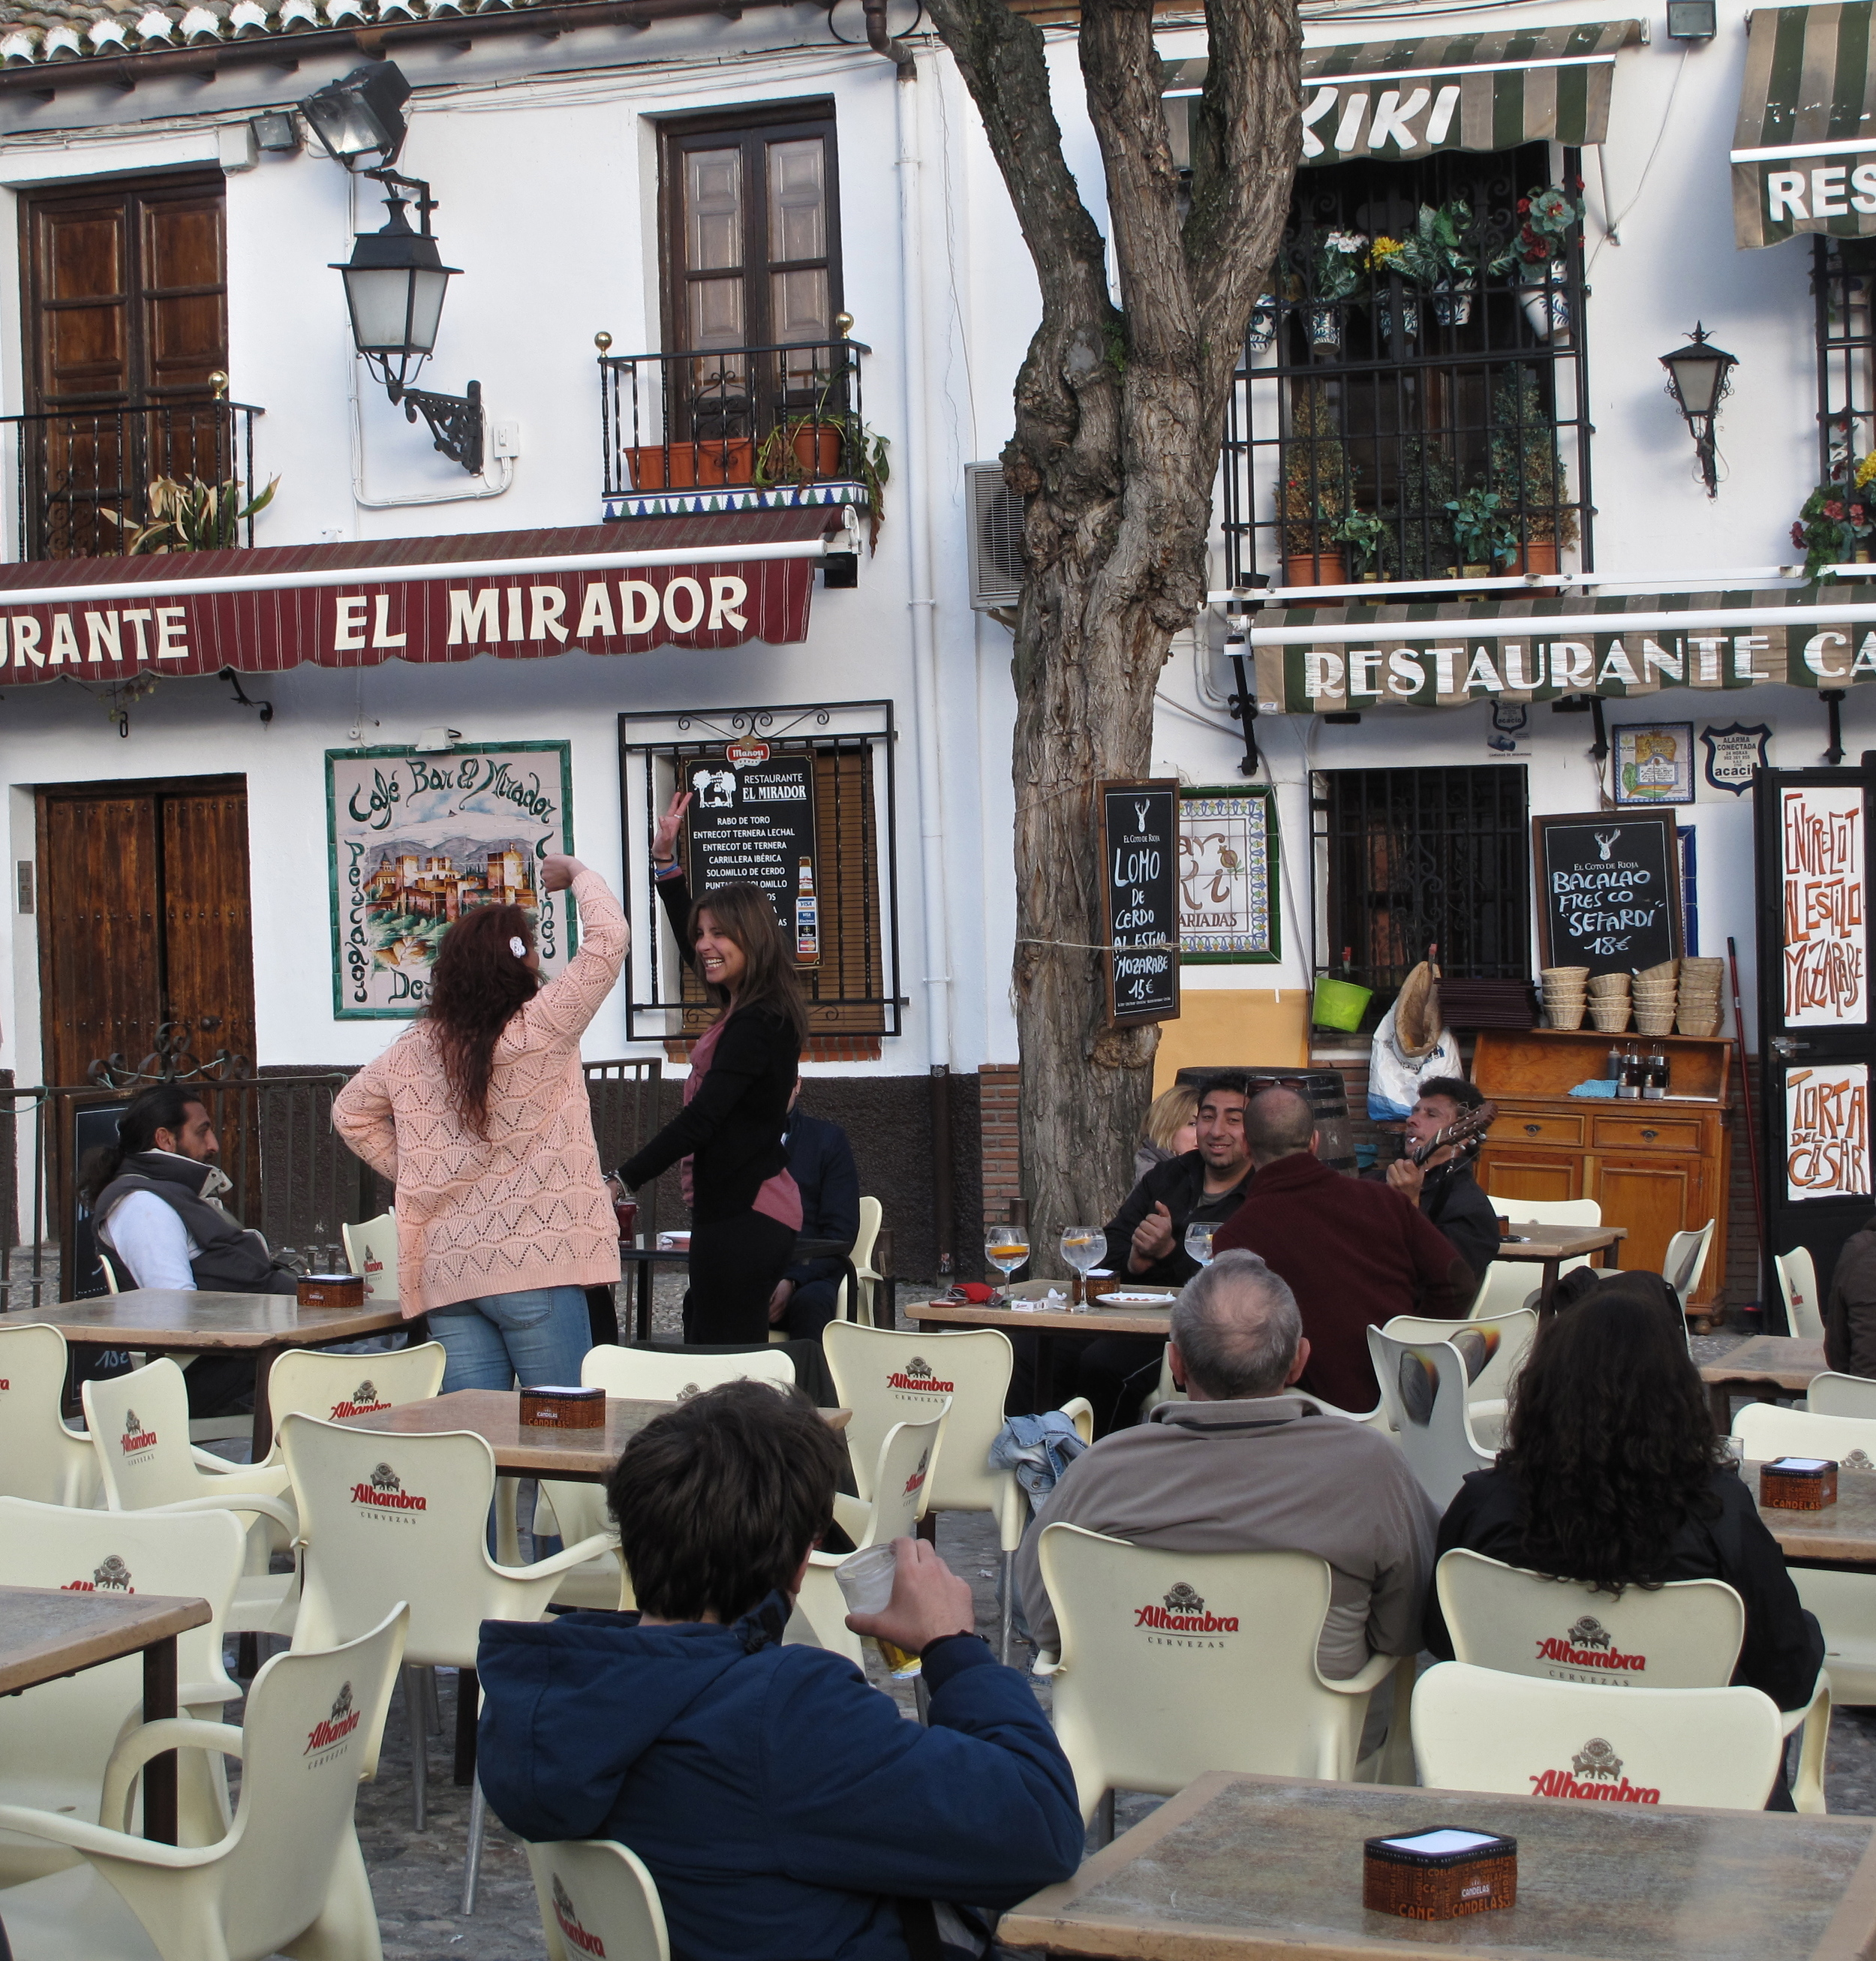 Women who started spontaneously dancing flamenco while men sing and play the guitar